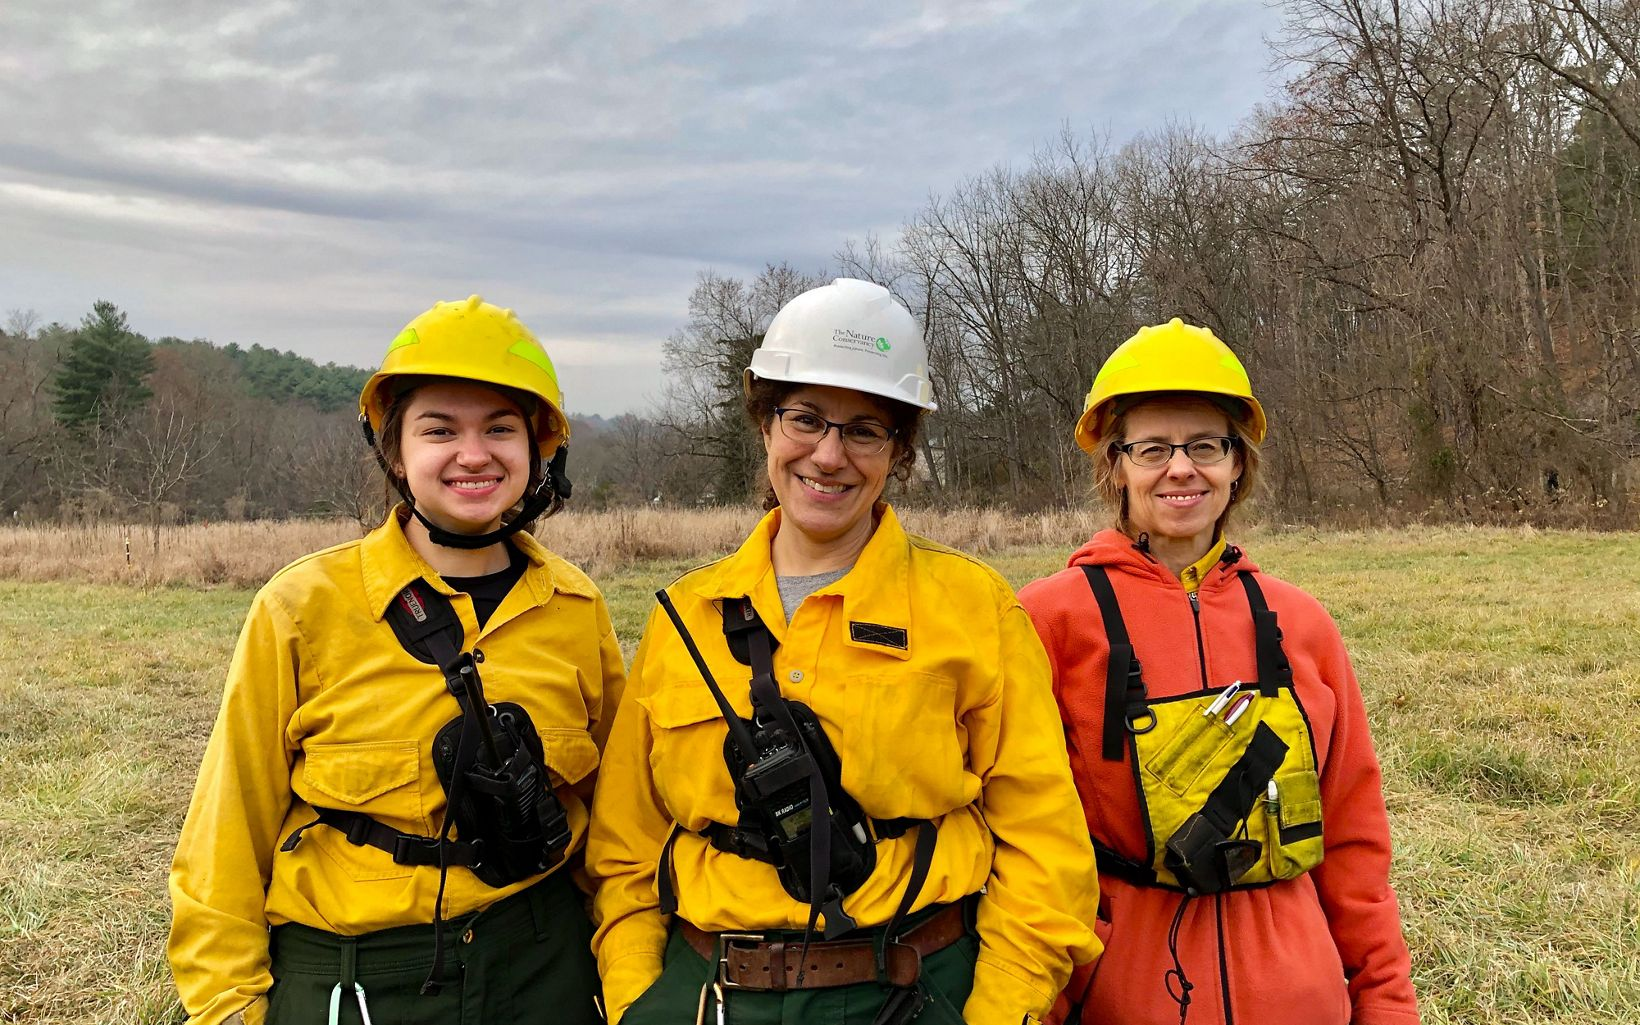 (L-R) Samantha Myers, Deborah Landau and Deborah Barber at the Sideling Hill Creek controlled burn, November 21, 2019.